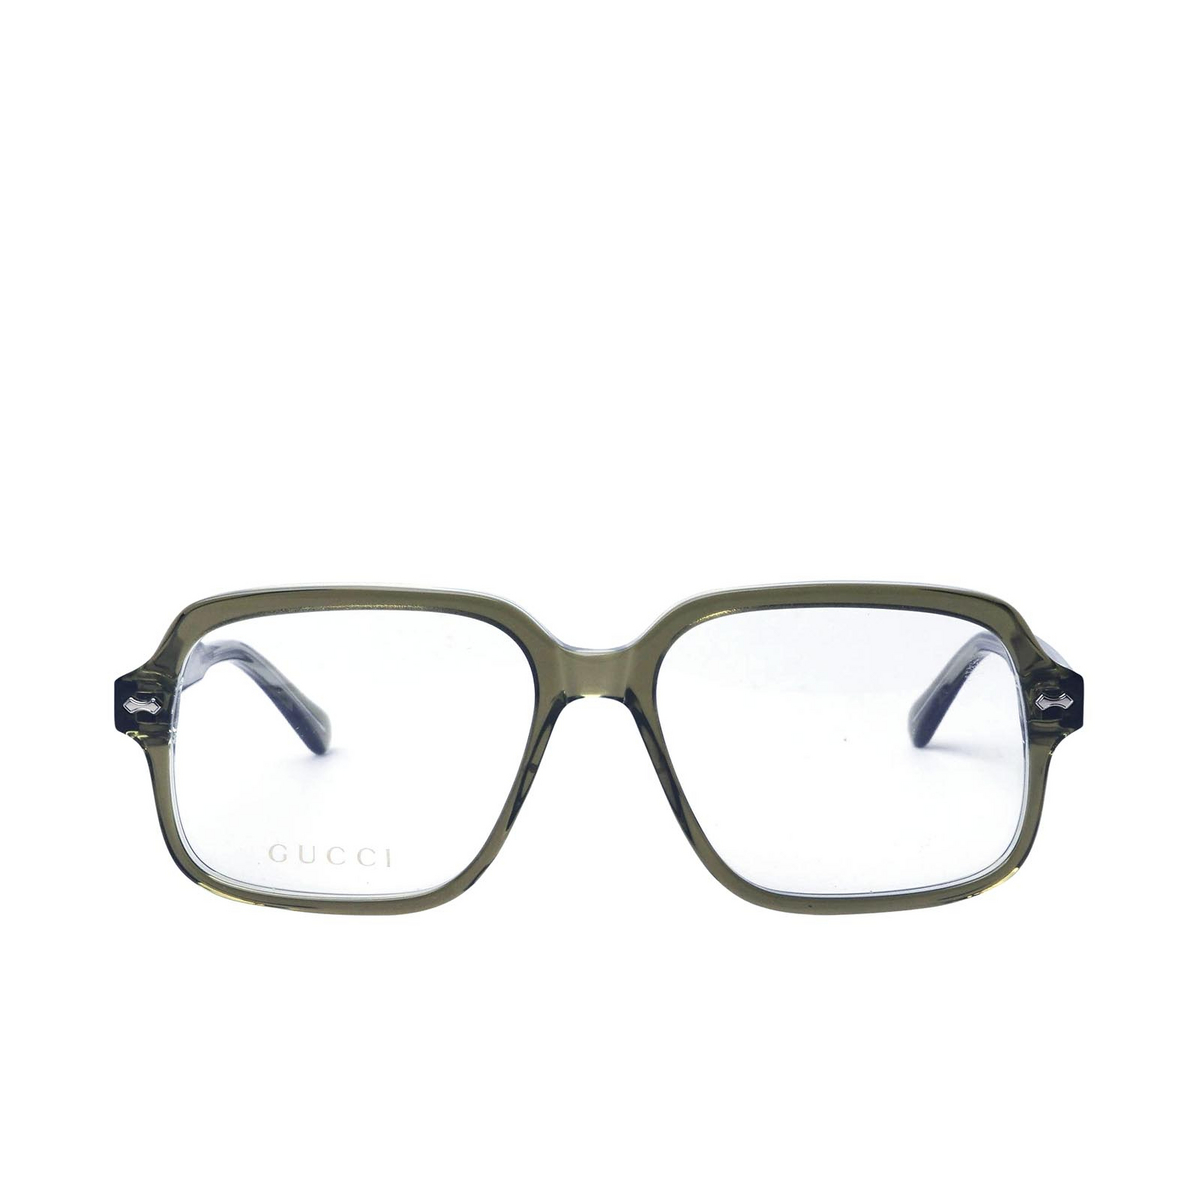 Gucci® Square Eyeglasses: GG0913O color Transparent Green 002 - front view.